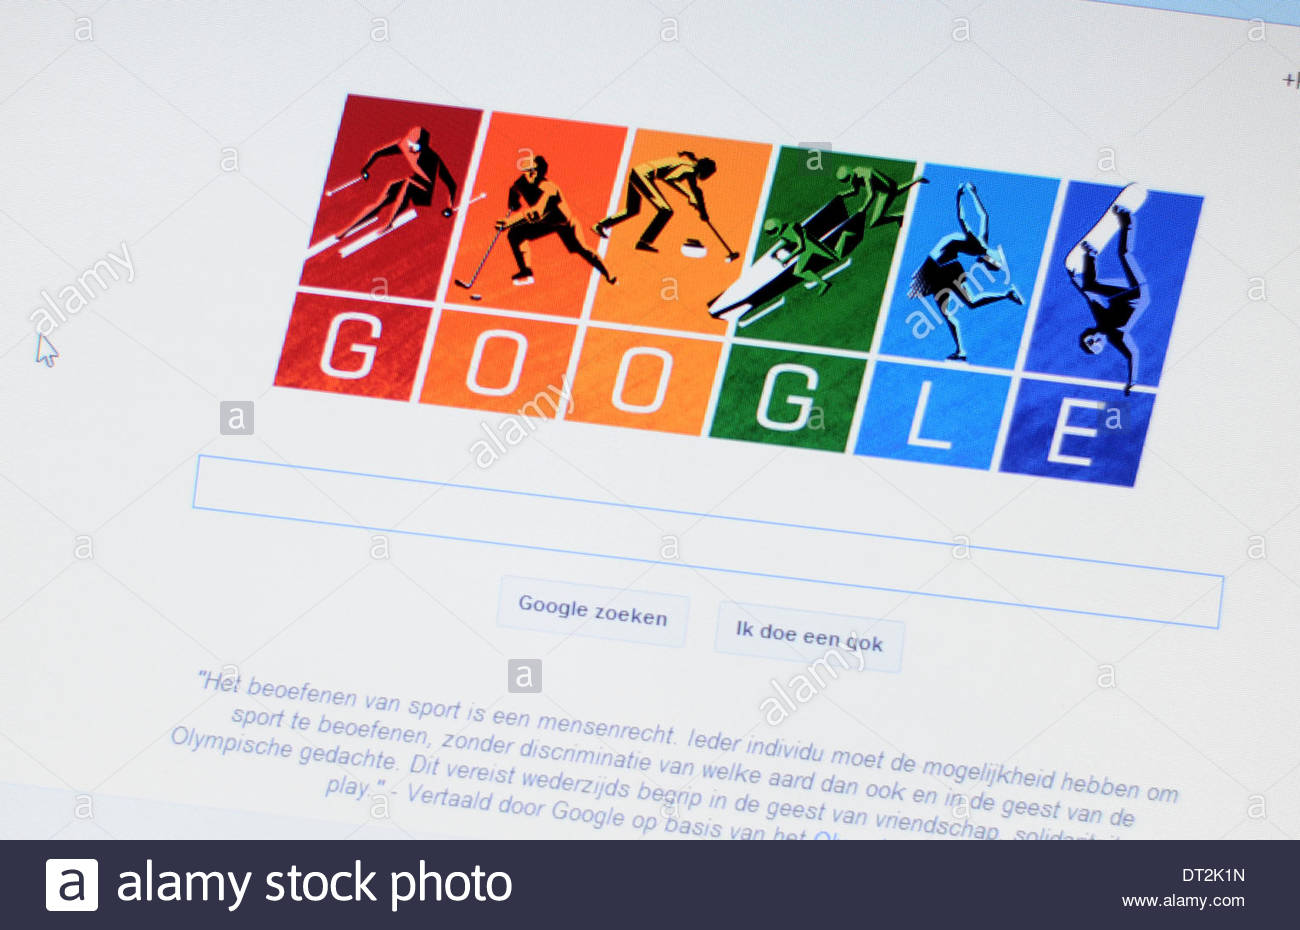 Google Home Page Stock Photos & Google Home Page Stock Images - Alamy